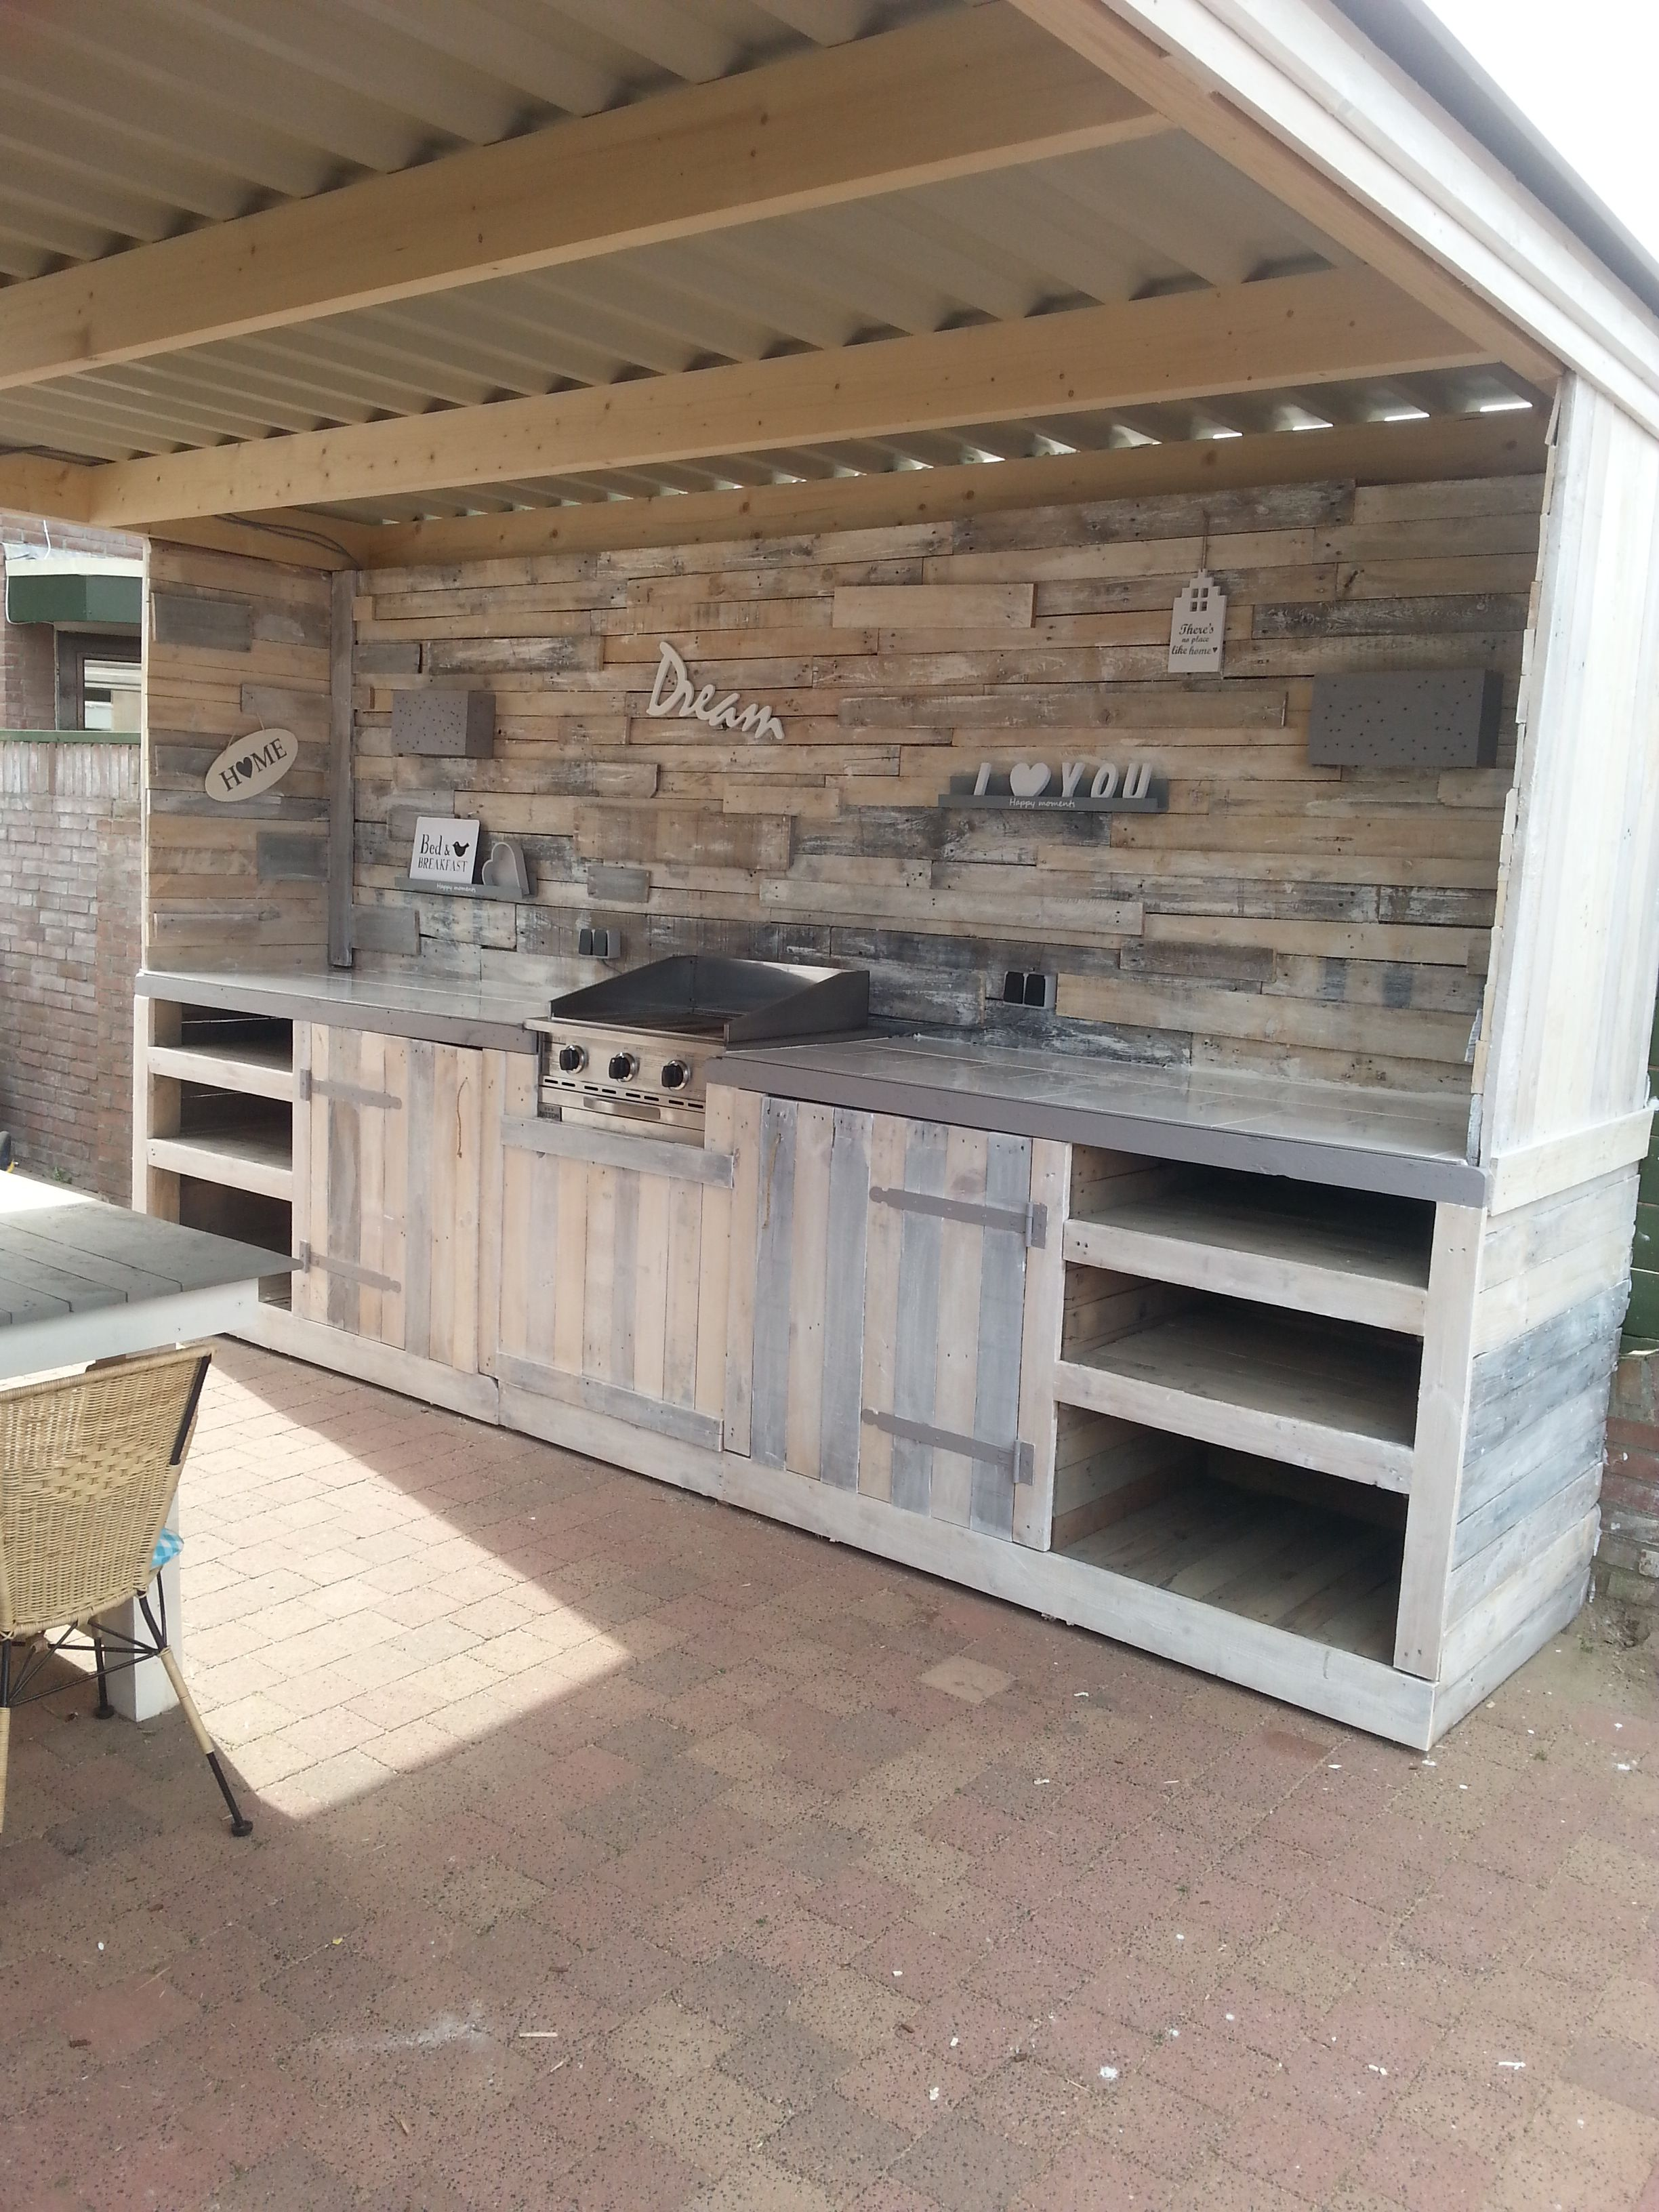 Pallet outdoor kitchen OutdoorKitchen PalletKitchen Must see Pallet